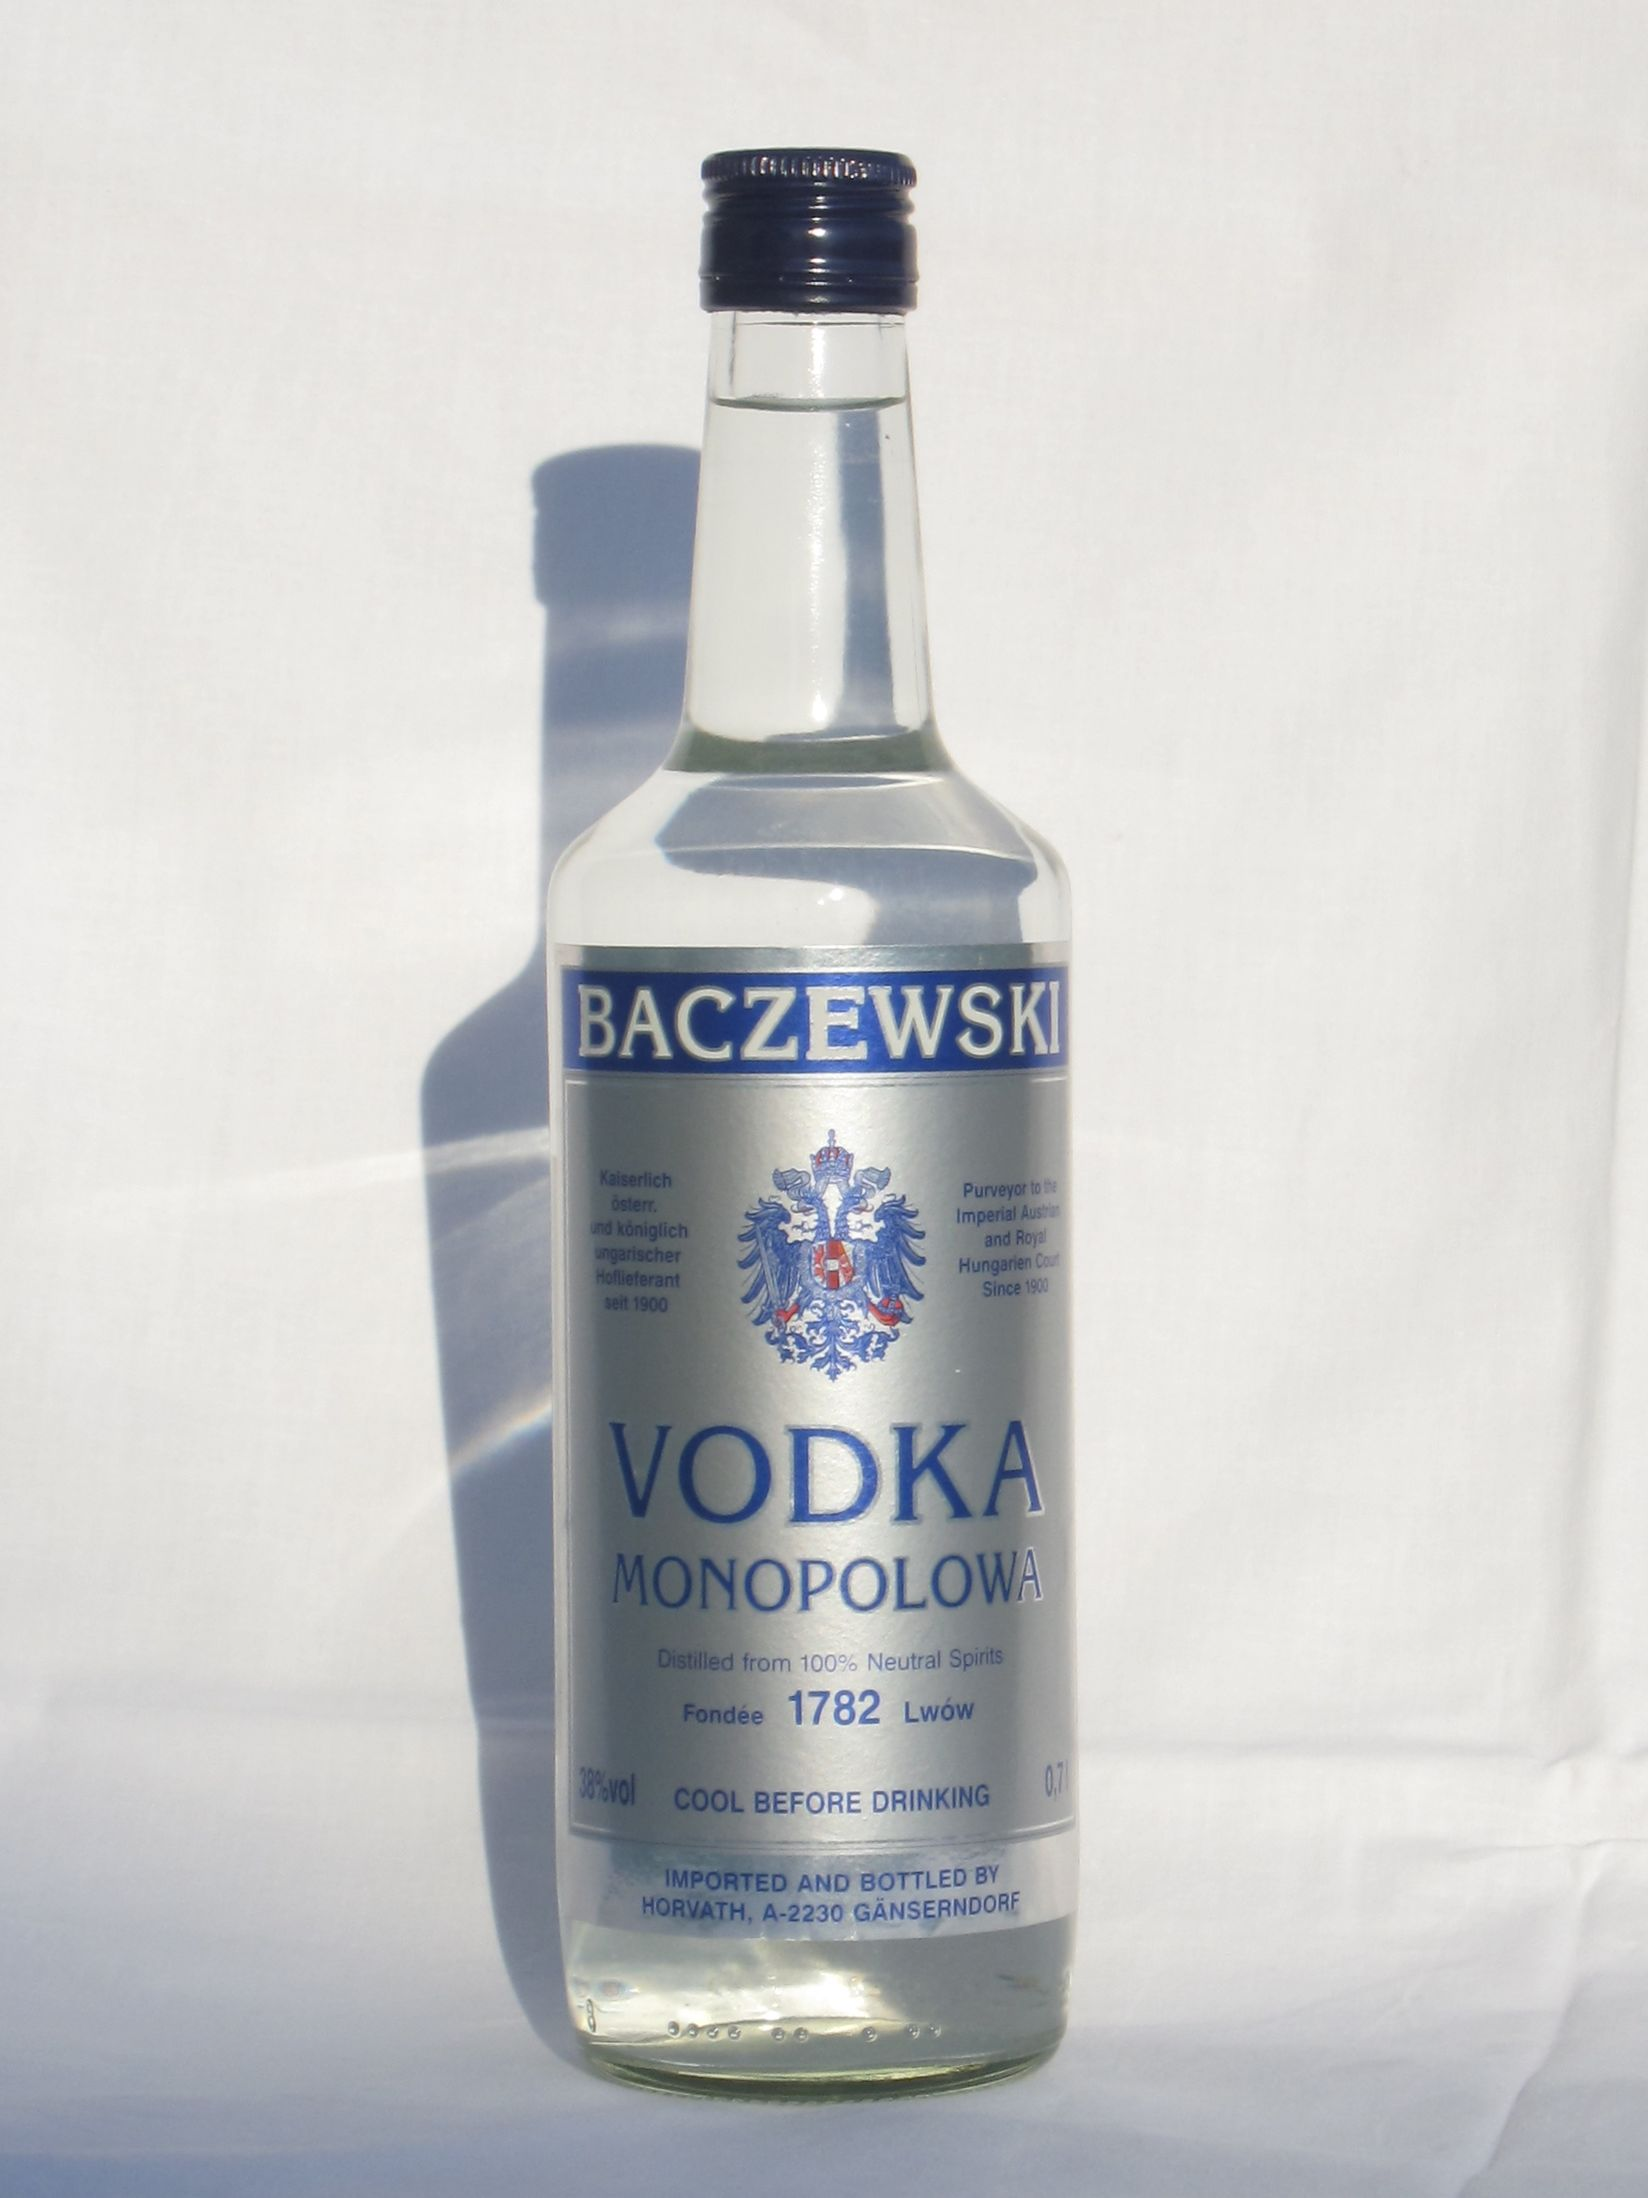 Vodka - The complete information and online sale with free